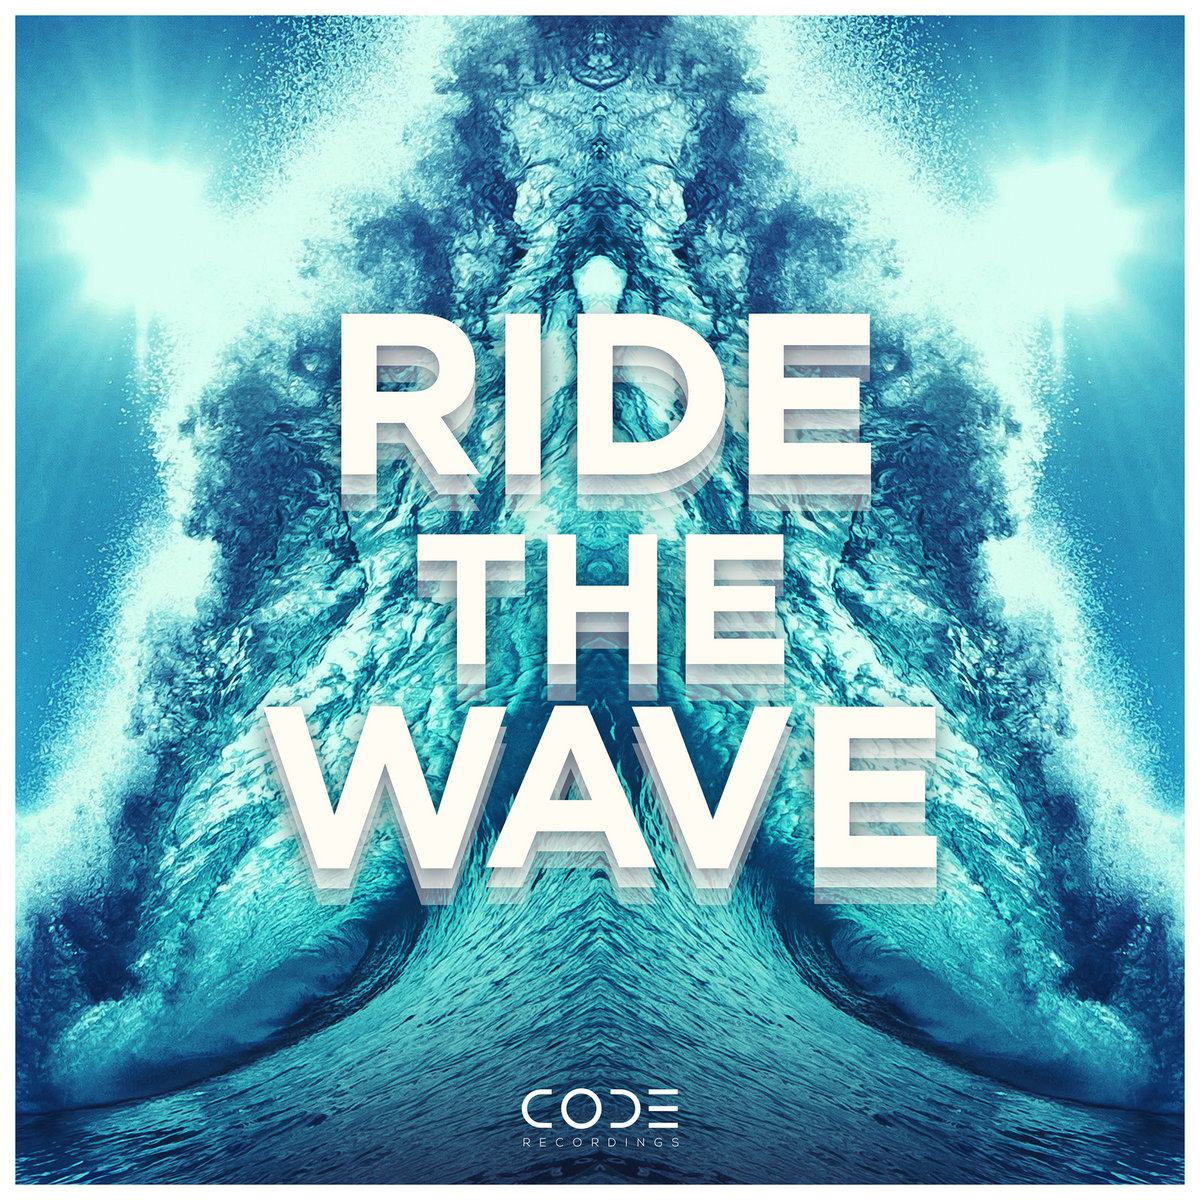 Ride The Wave | Bachelors Of Science, Eko Zu, and MC Dre | CODE Recordings